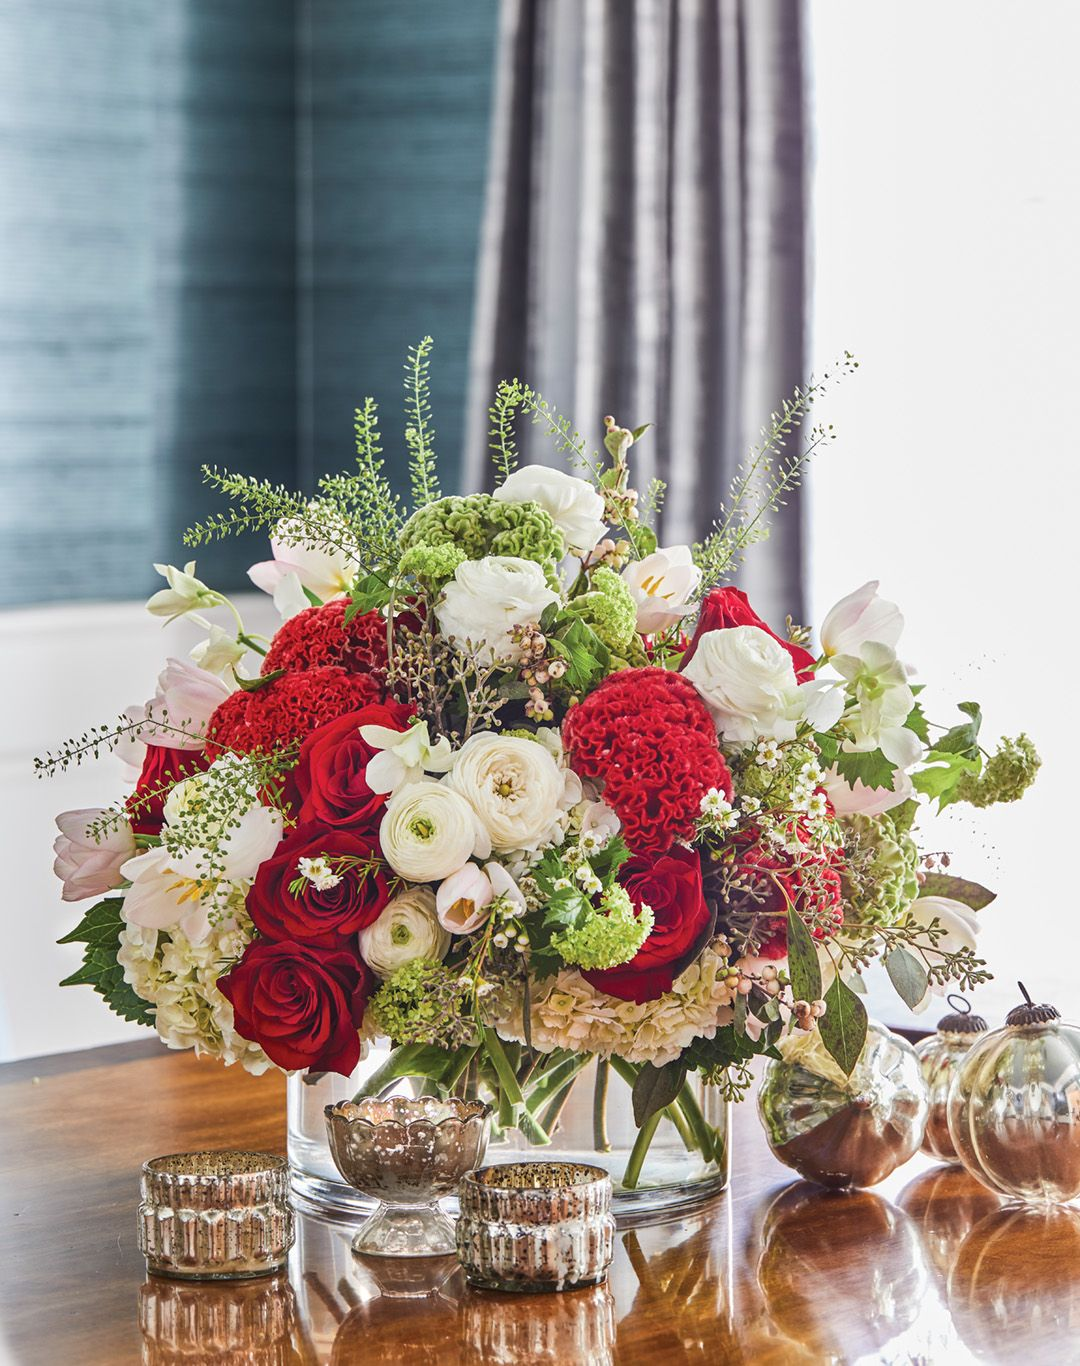 Canaan Marshall S Holiday Style Christmas Flower Arrangements Christmas Floral Arrangements Christmas Floral